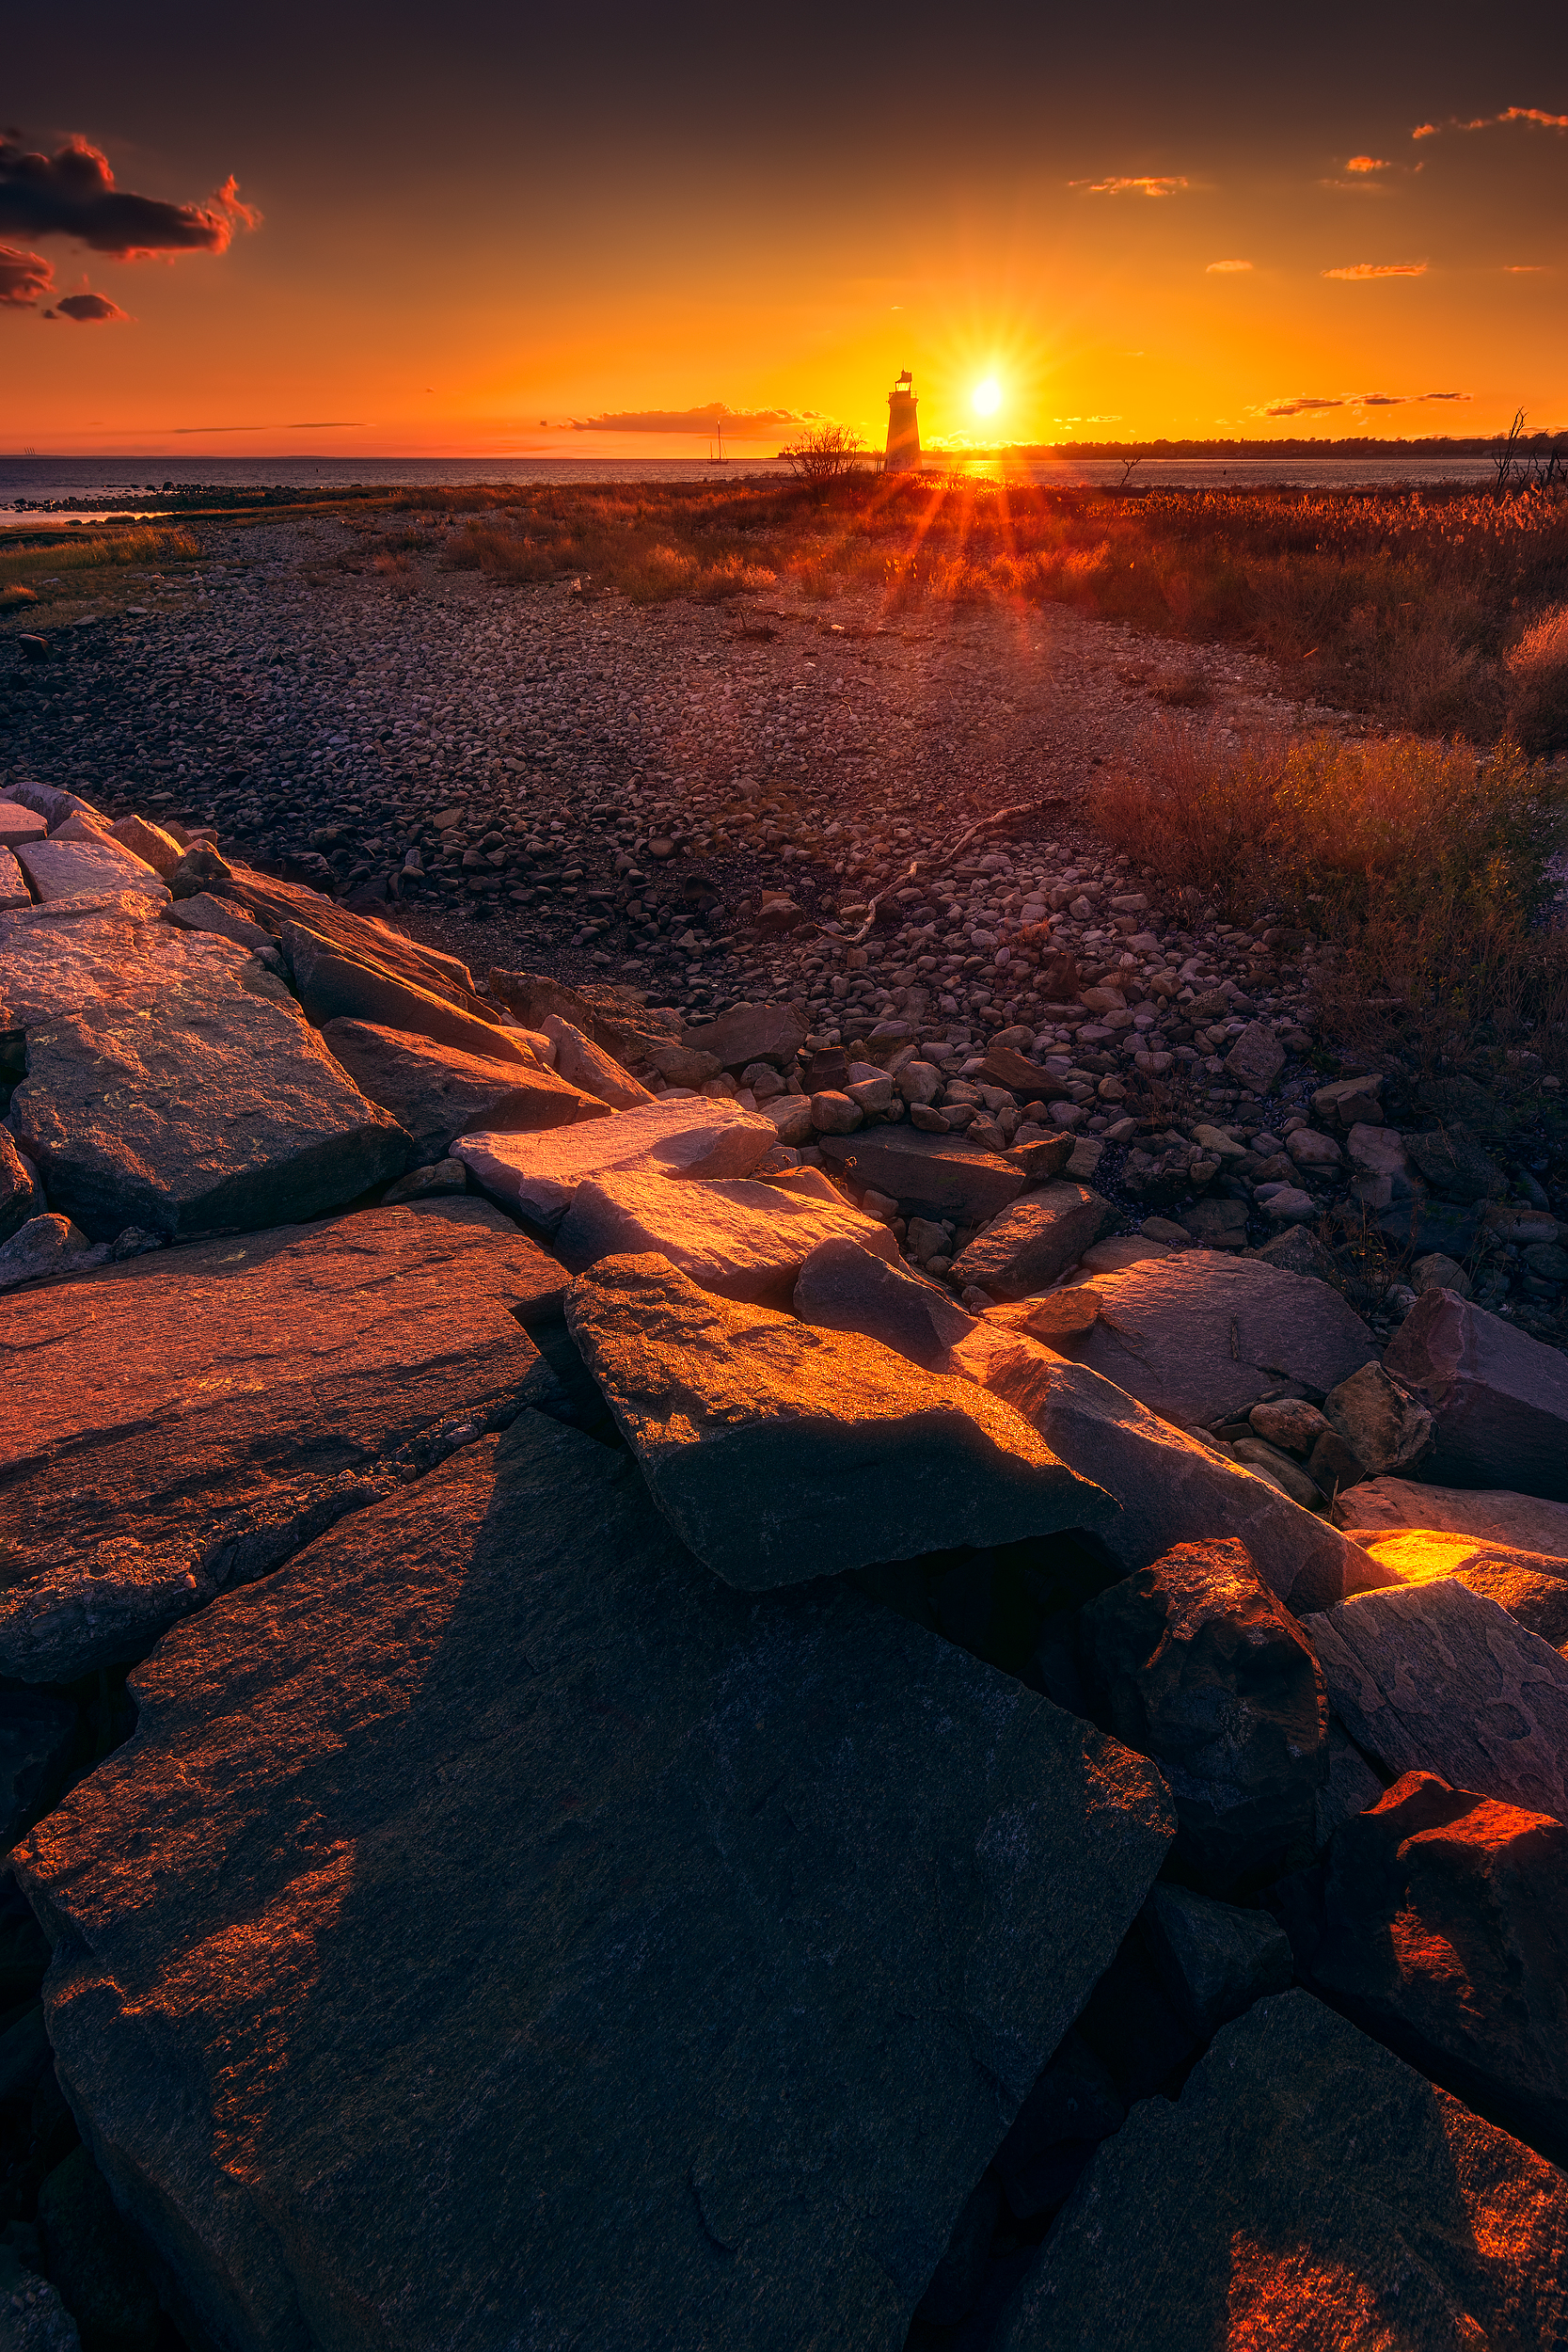 Sunset by Black Rock Light on Fayerweather Island in Bridgeport, Connecticut, USA.